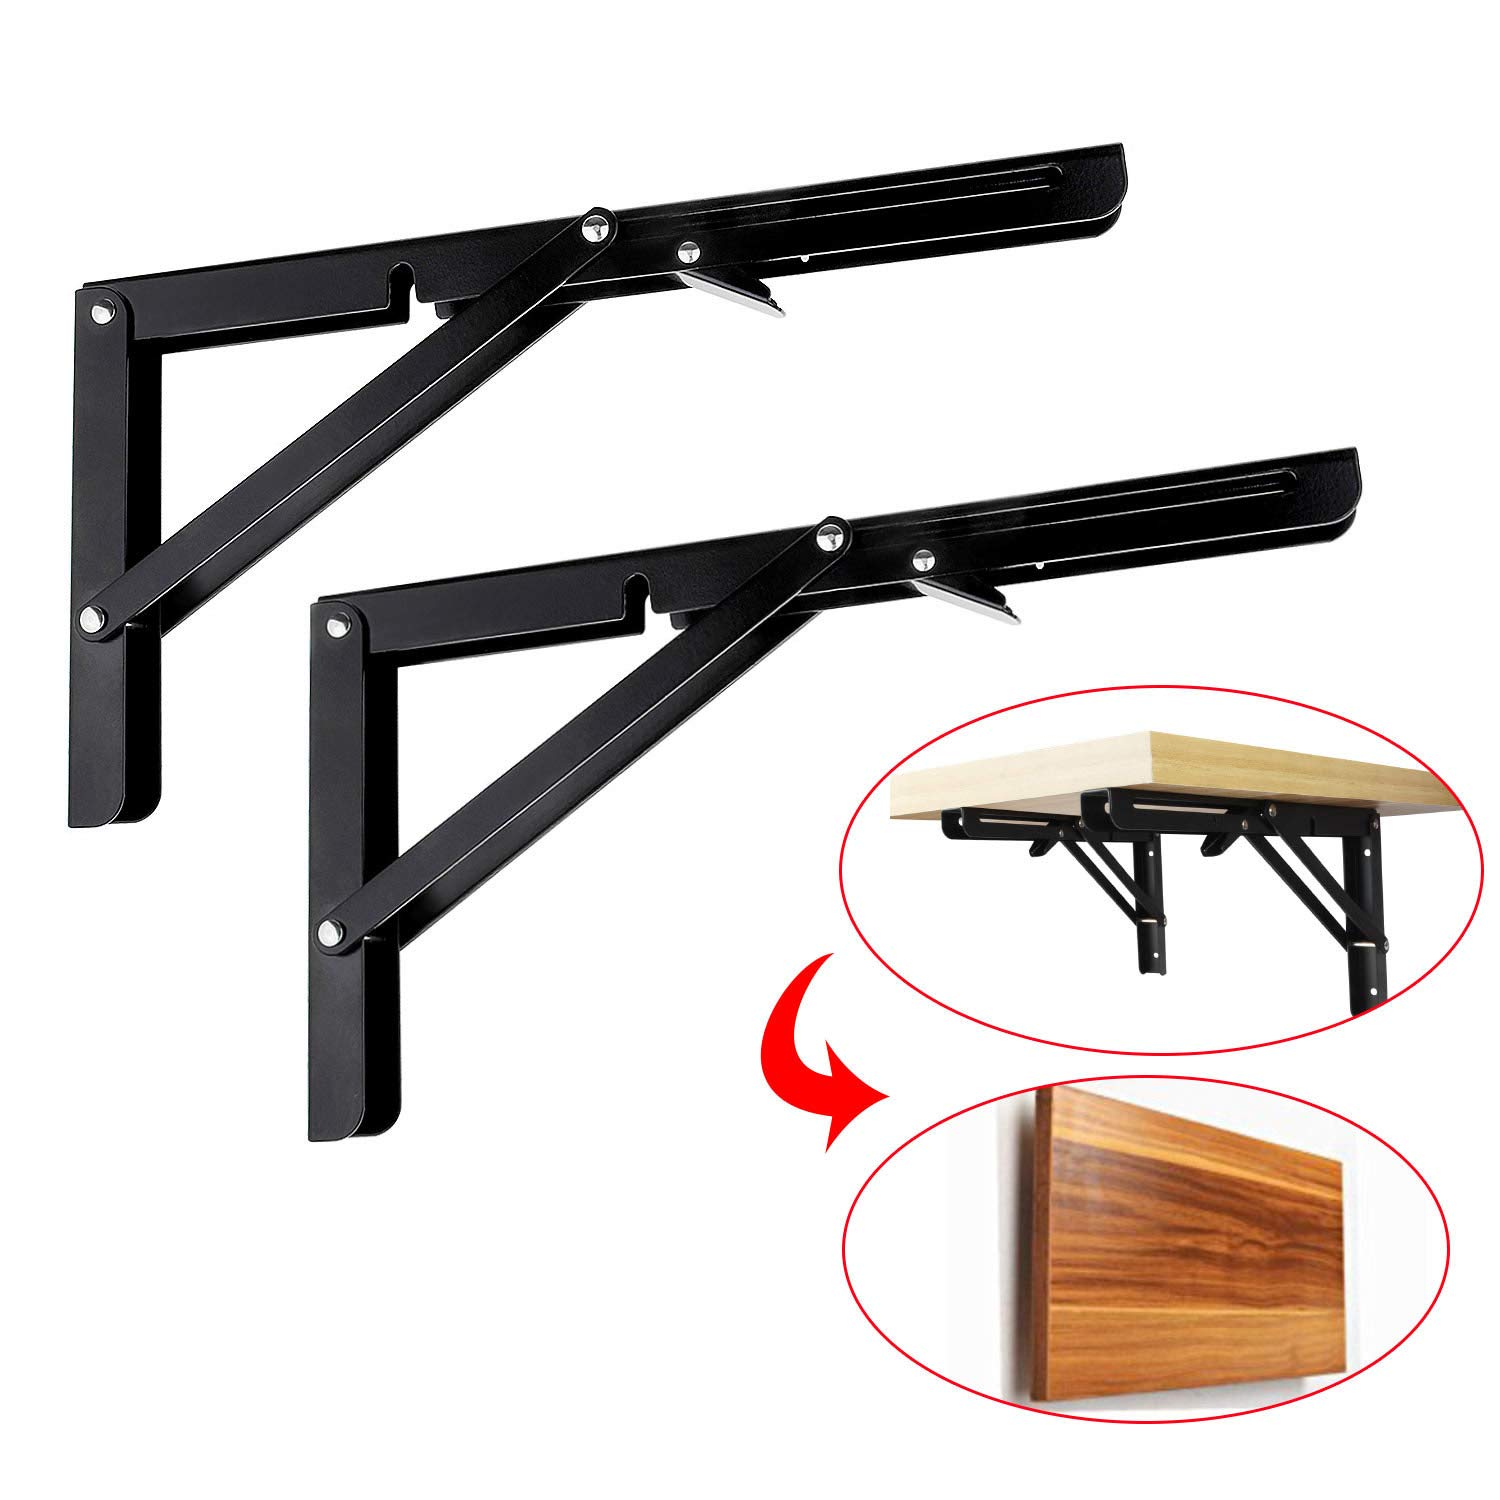 2 Pcs Folding Shelf Brackets 12 inch Black Heavy Duty Metal Triangle Table Bench Collapsible Shelf Bracket, Shelf Support Bracket Hinge Wall Mounted by STARVAST with Mounting Screws by STARVAST